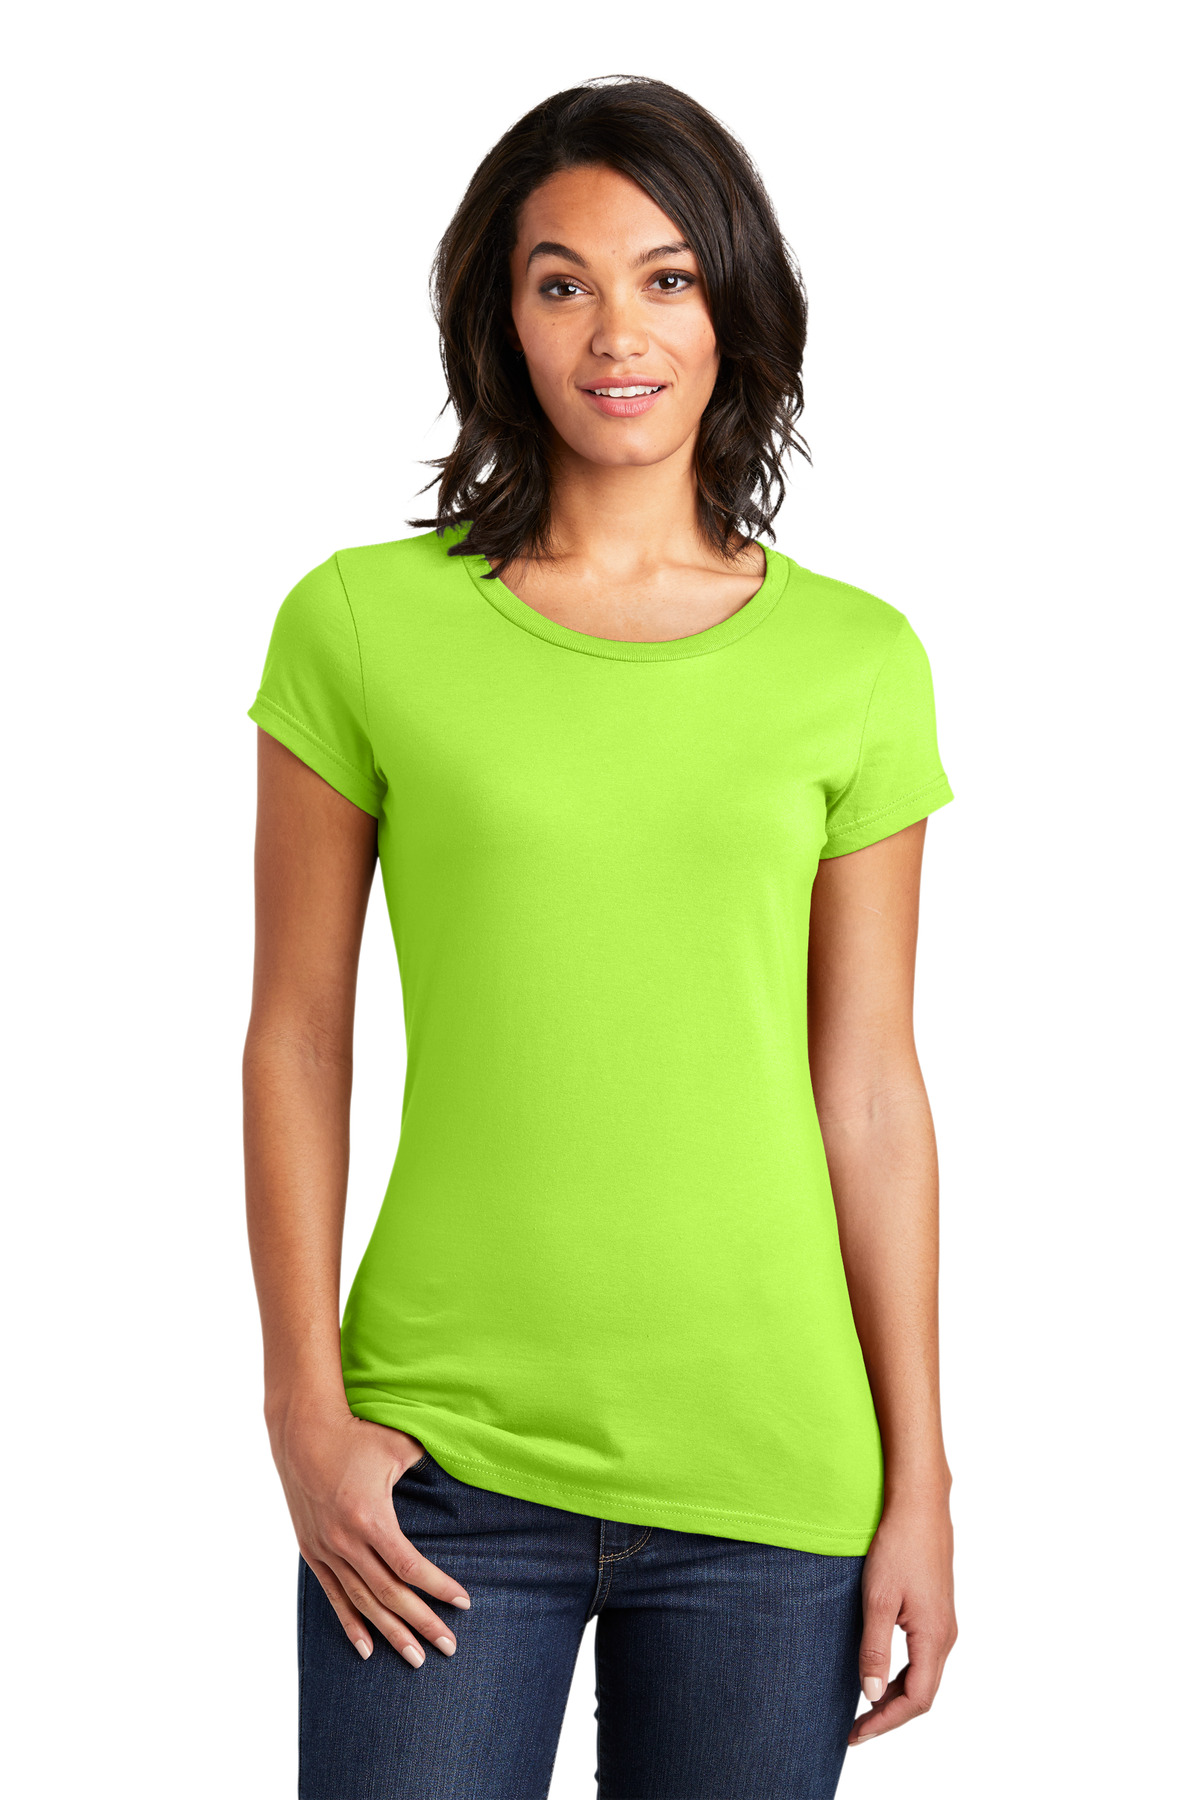 District ®  Women's Fitted Very Important Tee ® . DT6001 - Lime Shock